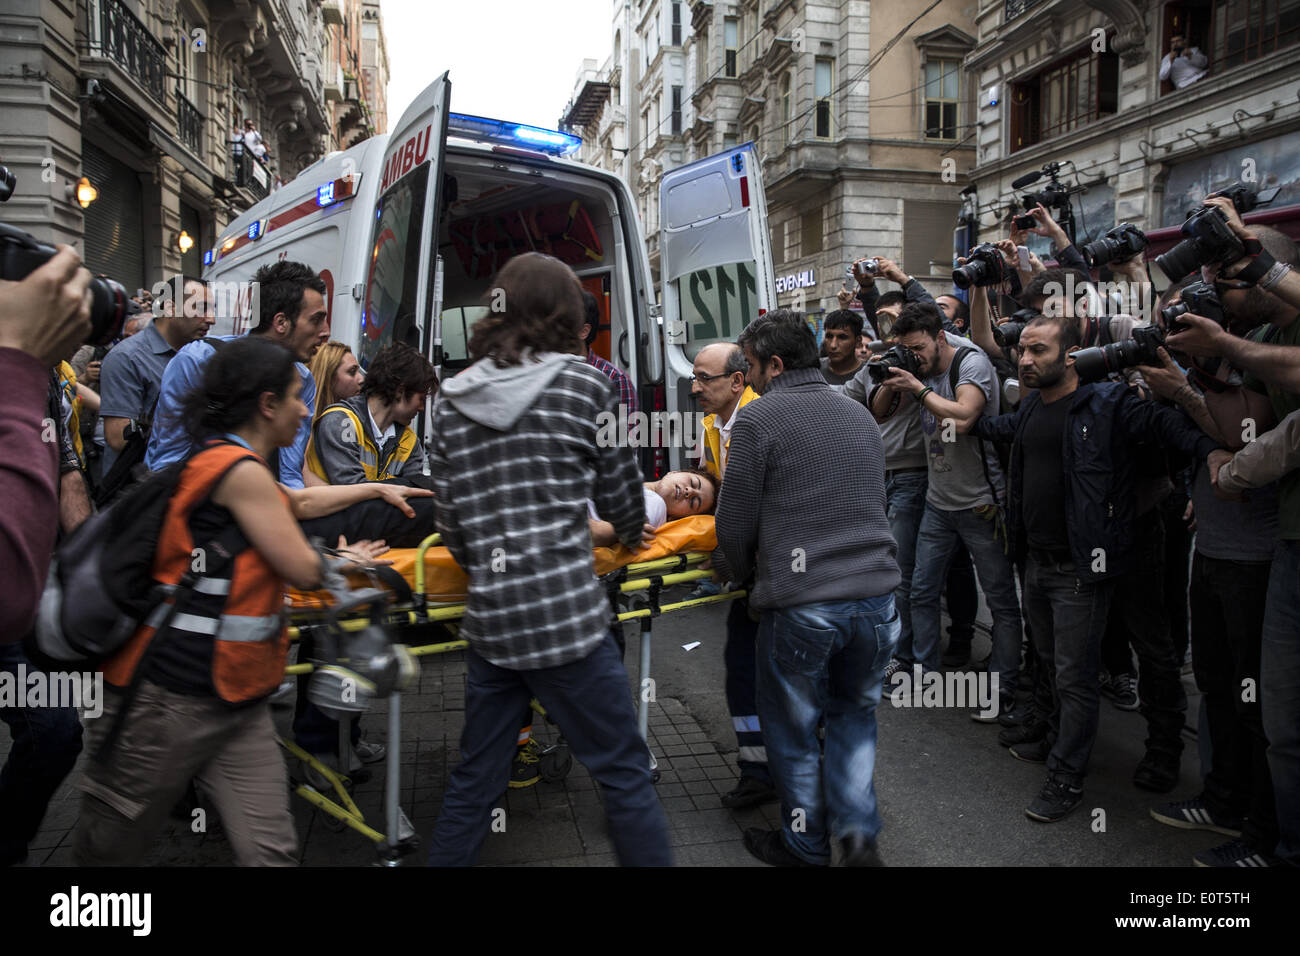 Istanbul, Turkey. 17th May, 2014. EMTs transfer a girl into an ambulance after she fell ill and had difficulty breathing after police fired tear gas at protesters in Istanbul on May 17, 2014. Anger has been mounting across the country regarding the government's handling and responsibility in the Soma mine accident, the worst in Turkey's history, which killed at least 300 miners. PHOTO BY JODI HILTON/NURPHOTO © Jodi Hilton/NurPhoto/ZUMAPRESS.com/Alamy Live News - Stock Image